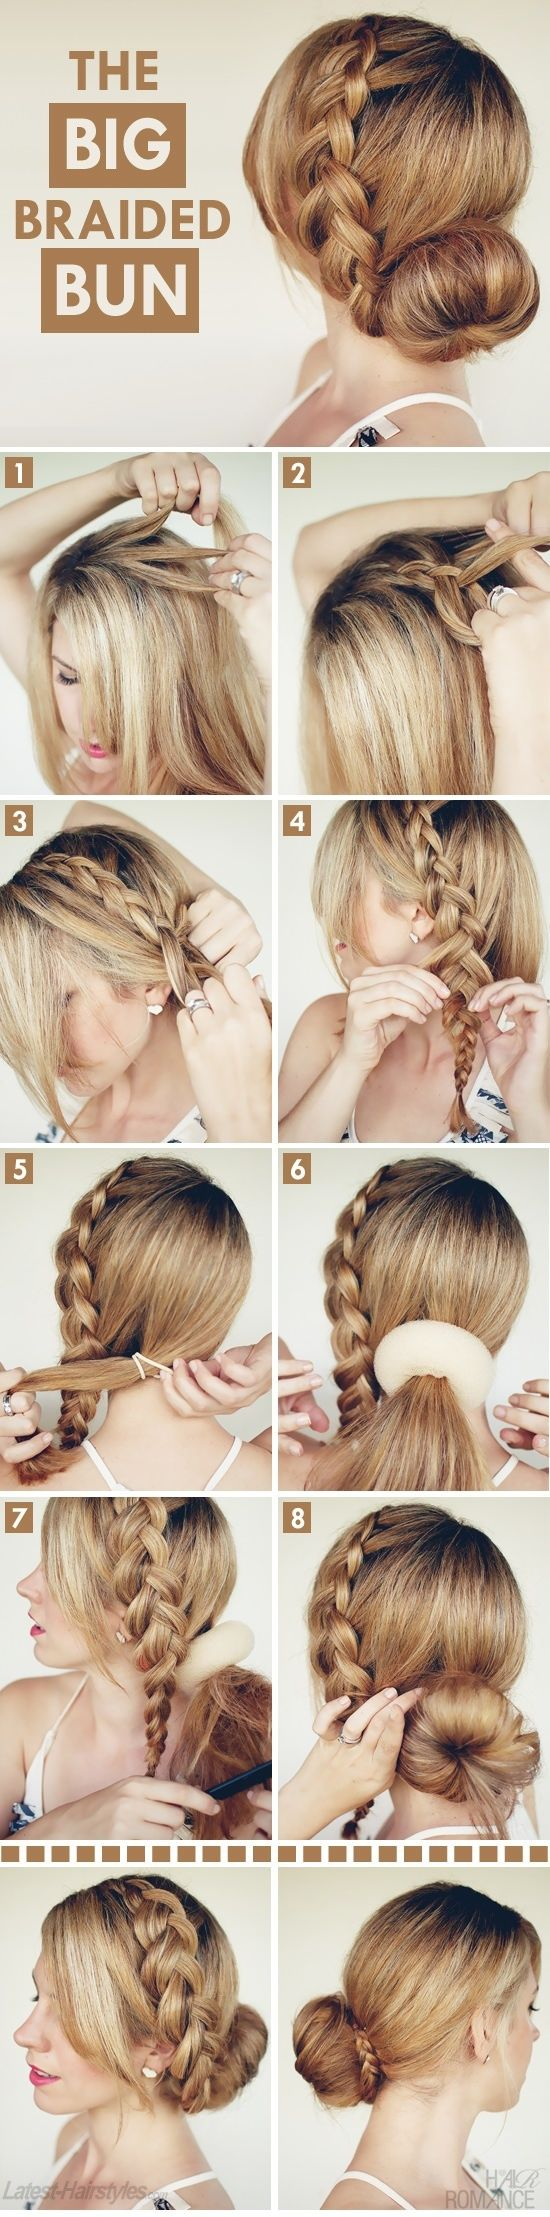 Hair braid tutorials easy to be done top prom pinterest